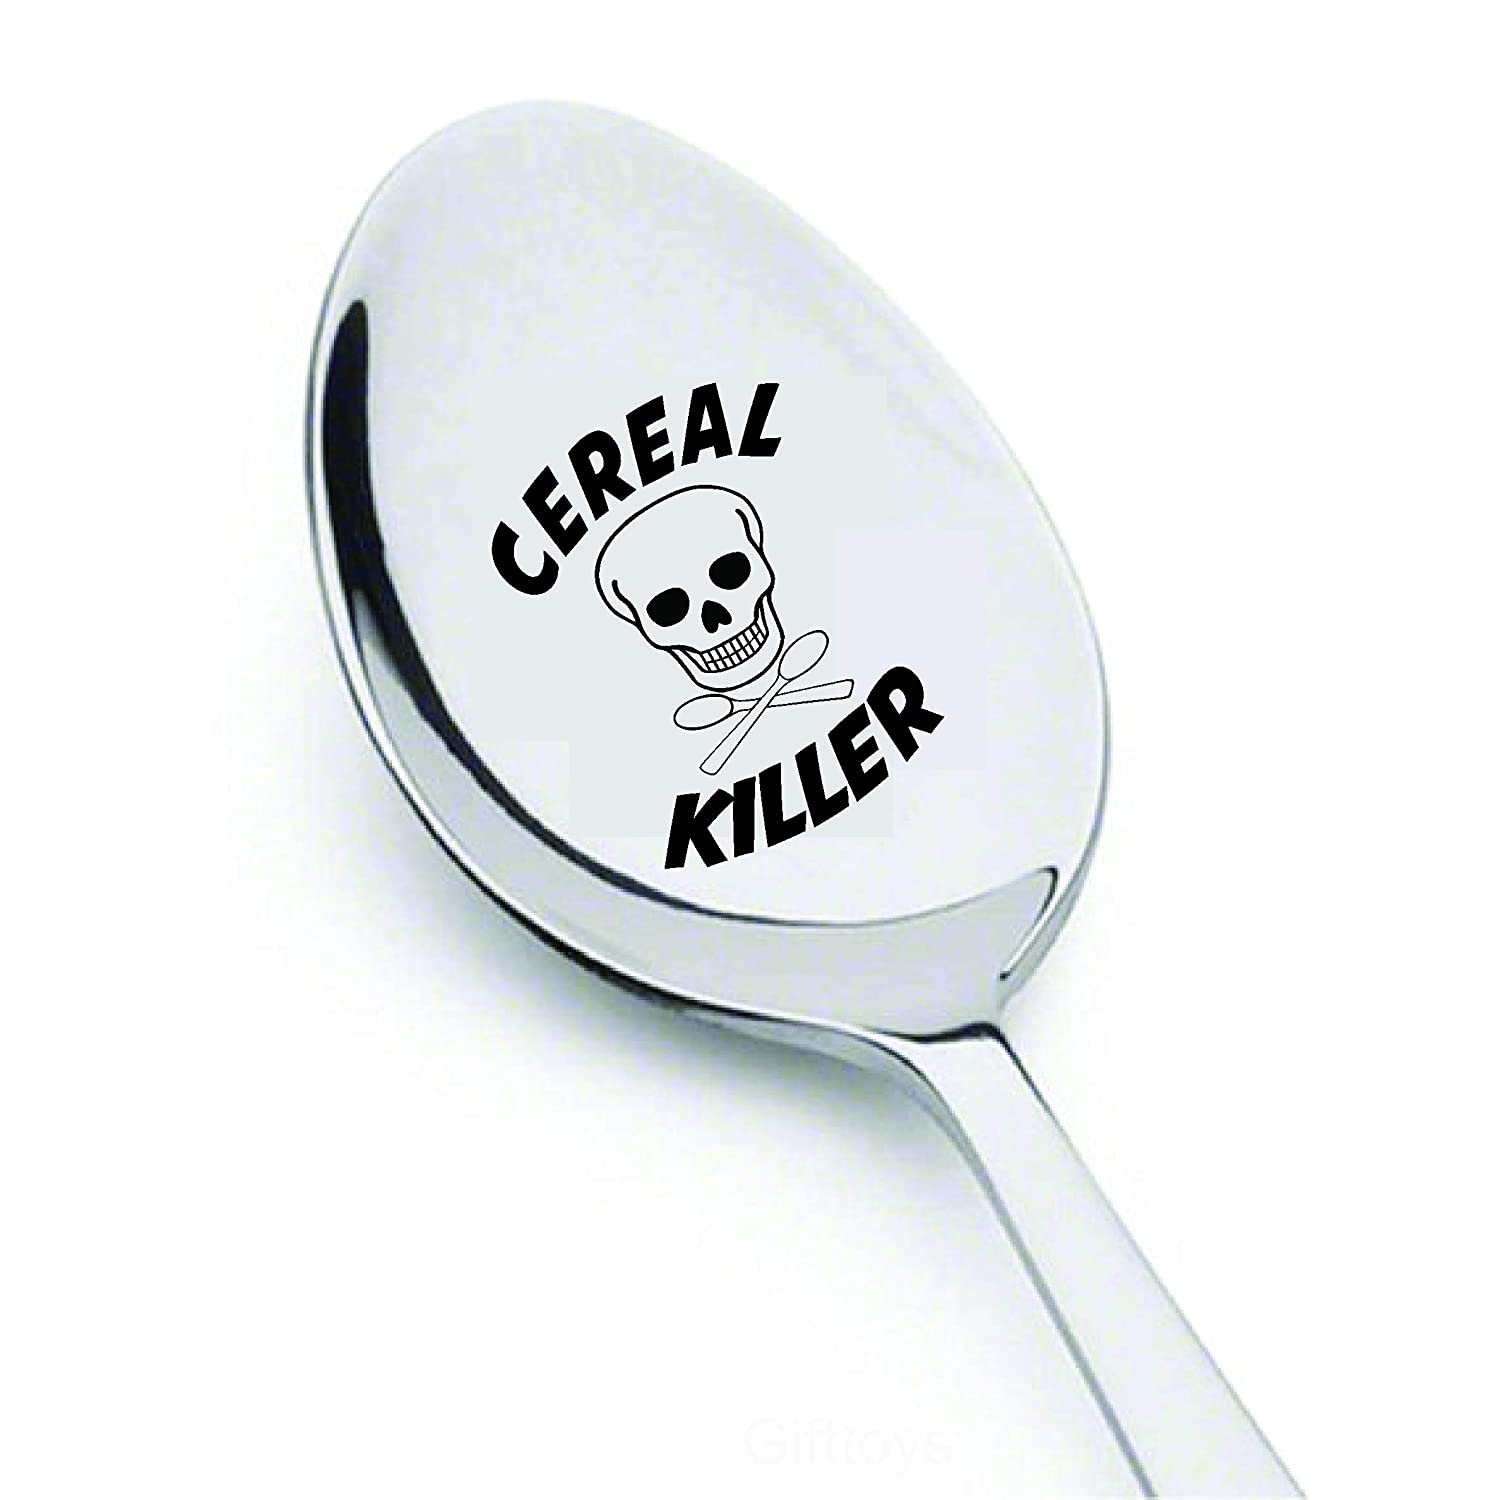 Cereal-Killer Spoon - Engraved Spoon - Gift for Him - Gift for Her - Lovers Gift - Spoon Gift - Funny Gifts - Tea Spoon - Best Friends Gifts - mom Gifts